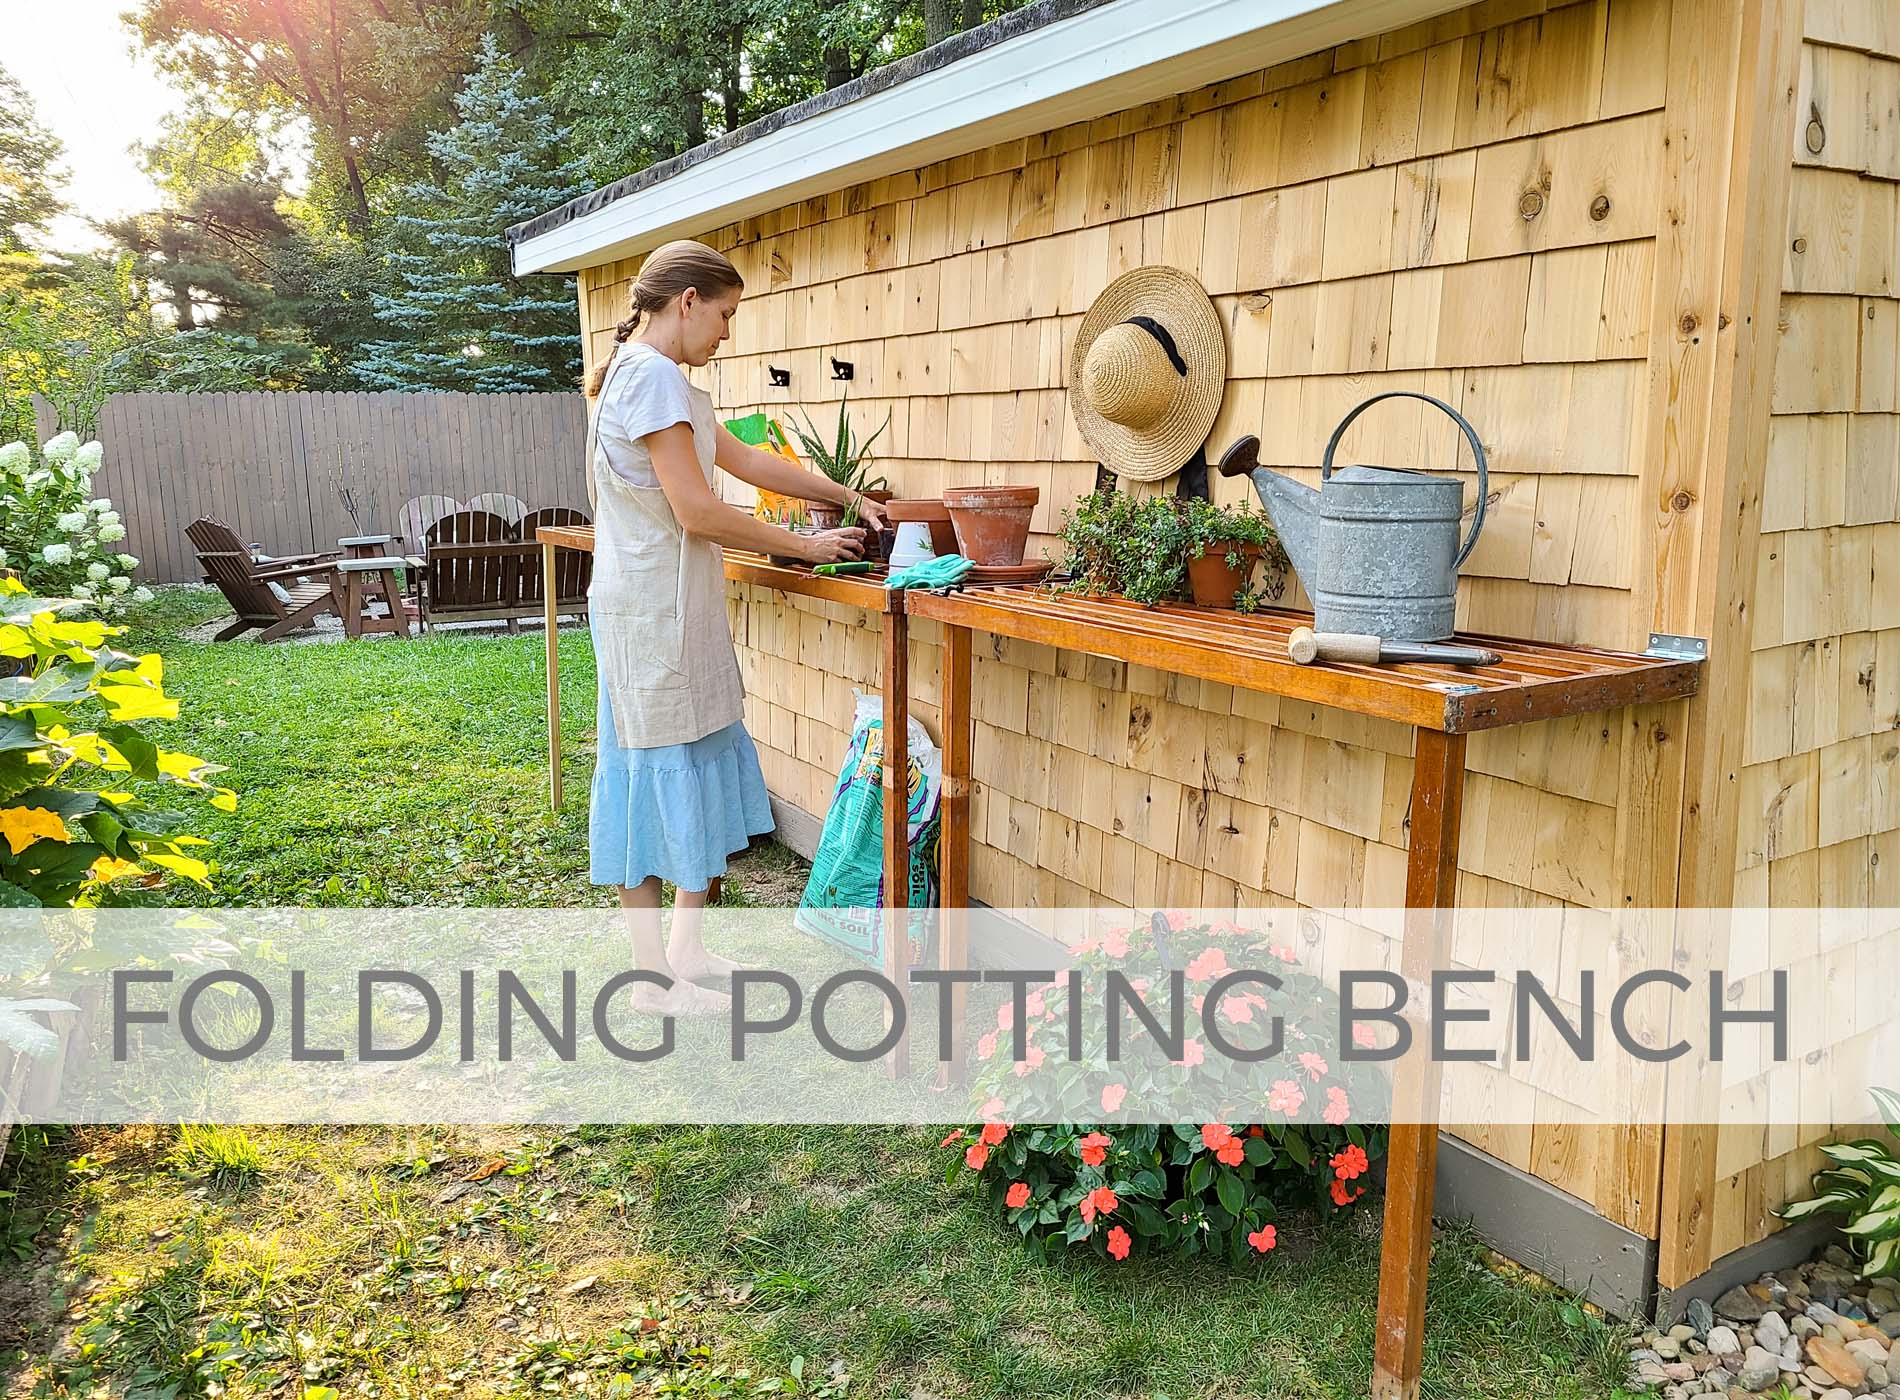 DIY Folding Potting Bench with Design Plans by Prodigal Pieces | prodigalpieces.com